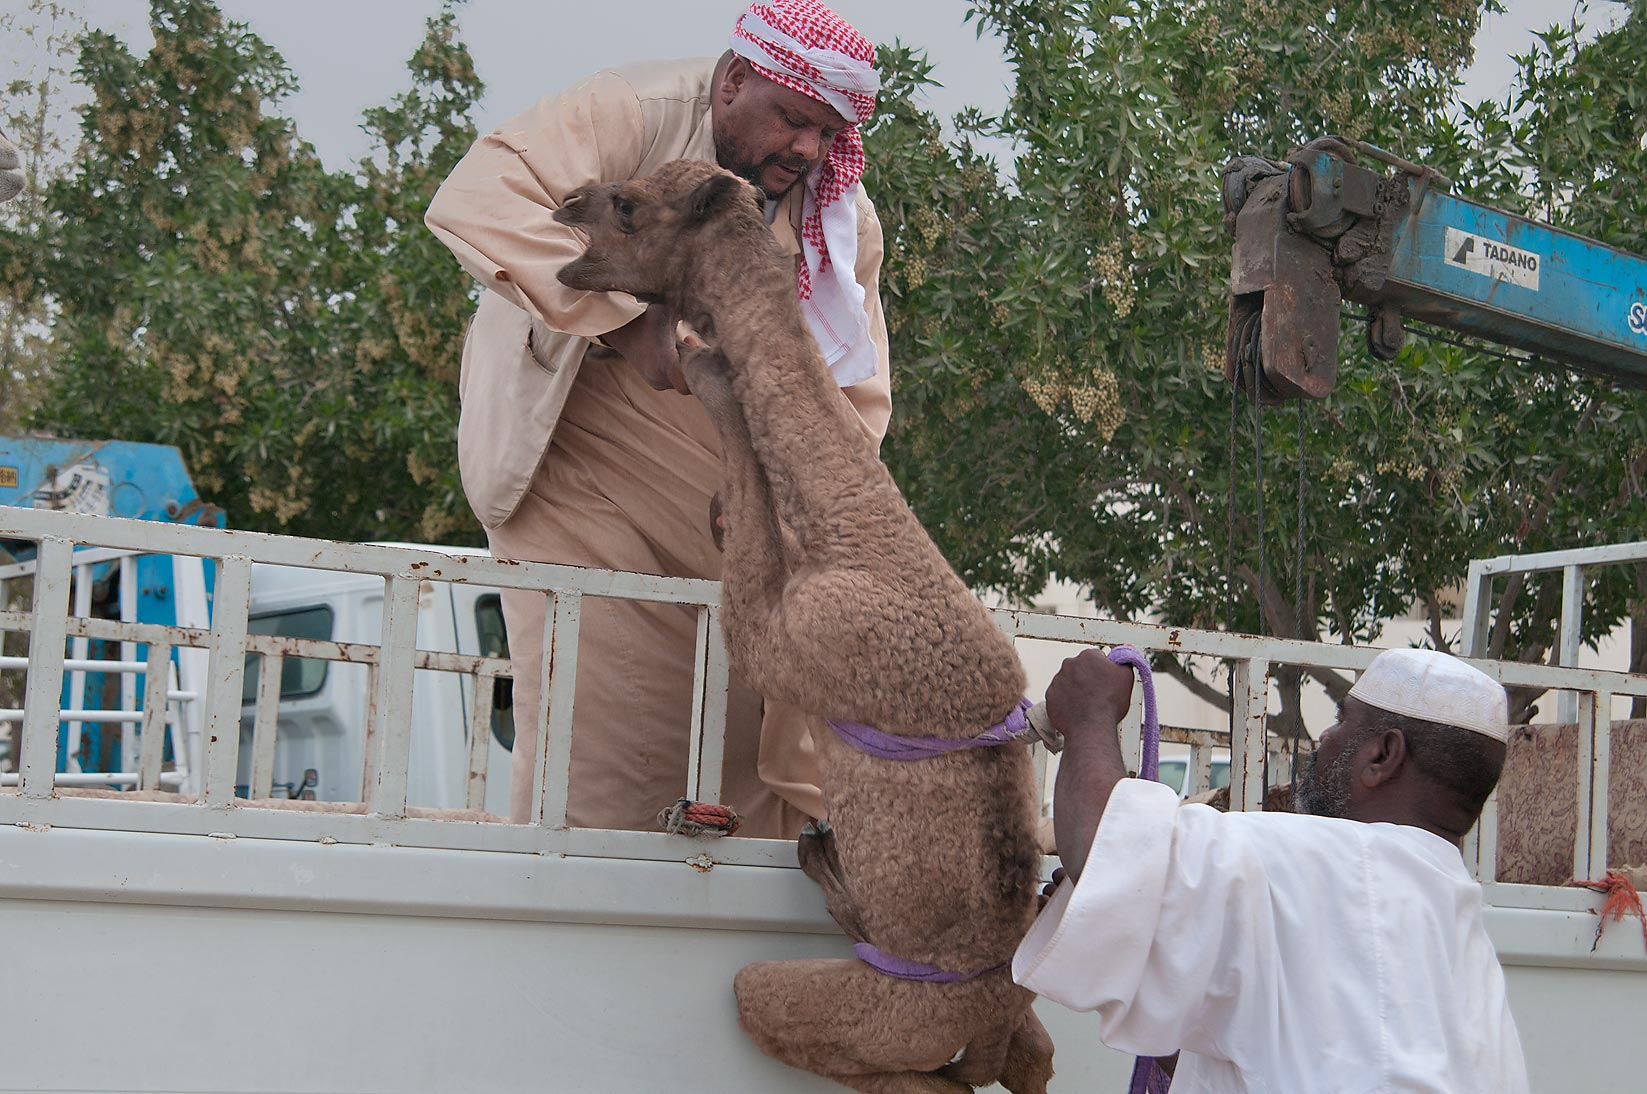 Lifting a camel calf on a truck in Camel Market (Souq), racing section. Doha, Qatar